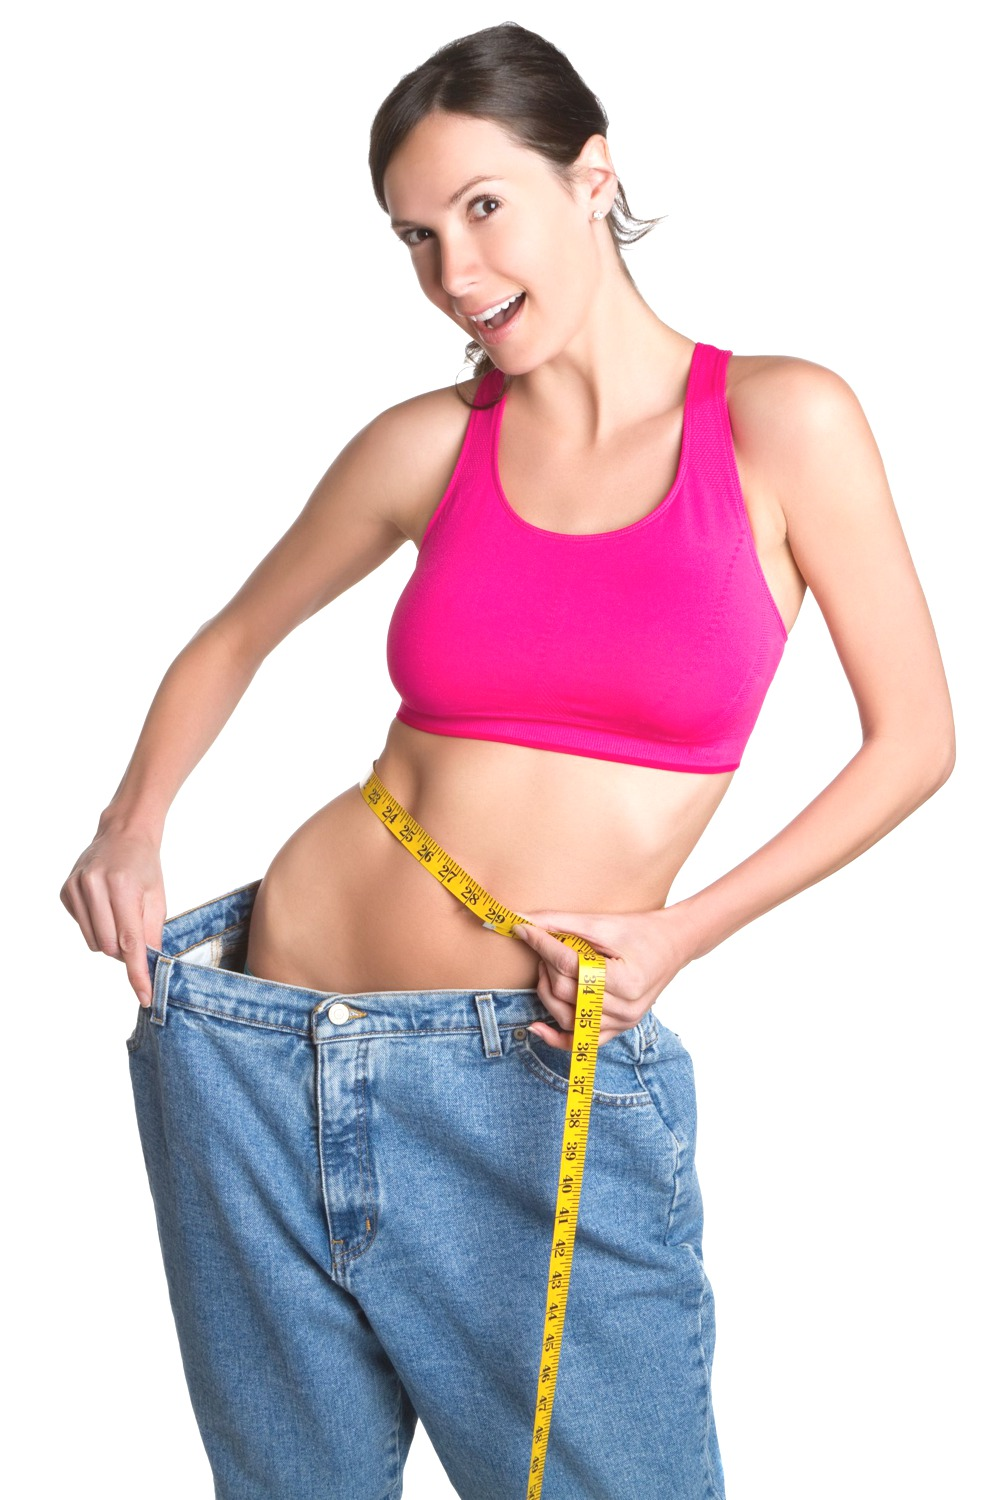 How to lose weight fast without any diet or exercise